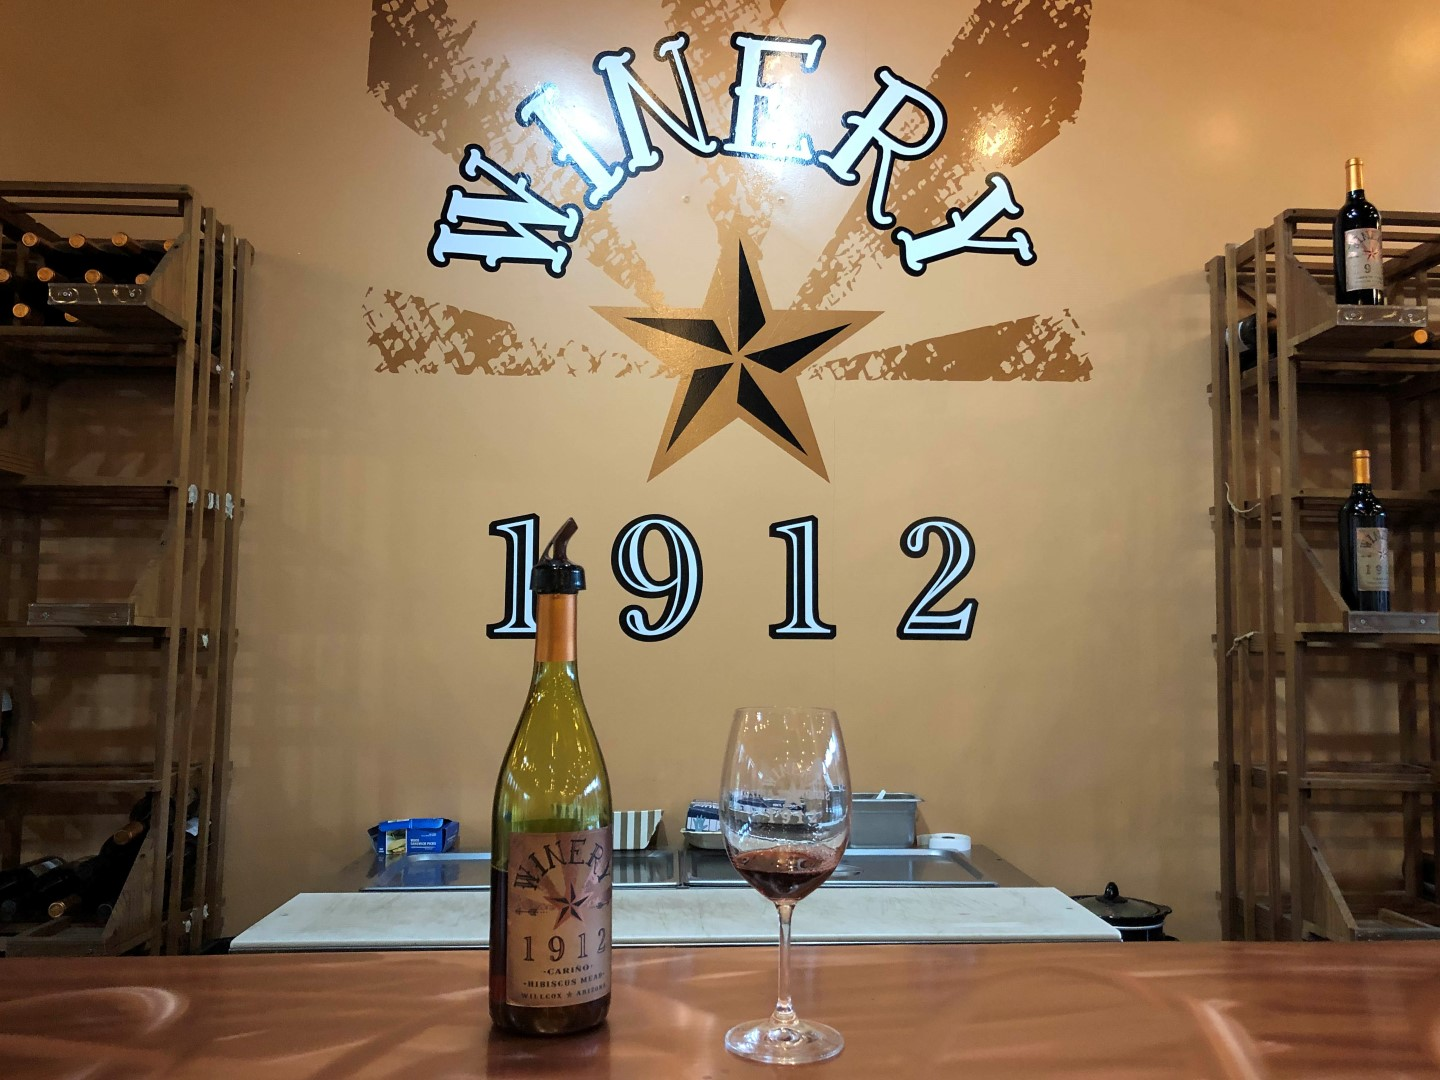 Winery 1912 (Photo by Sarah Cribari )